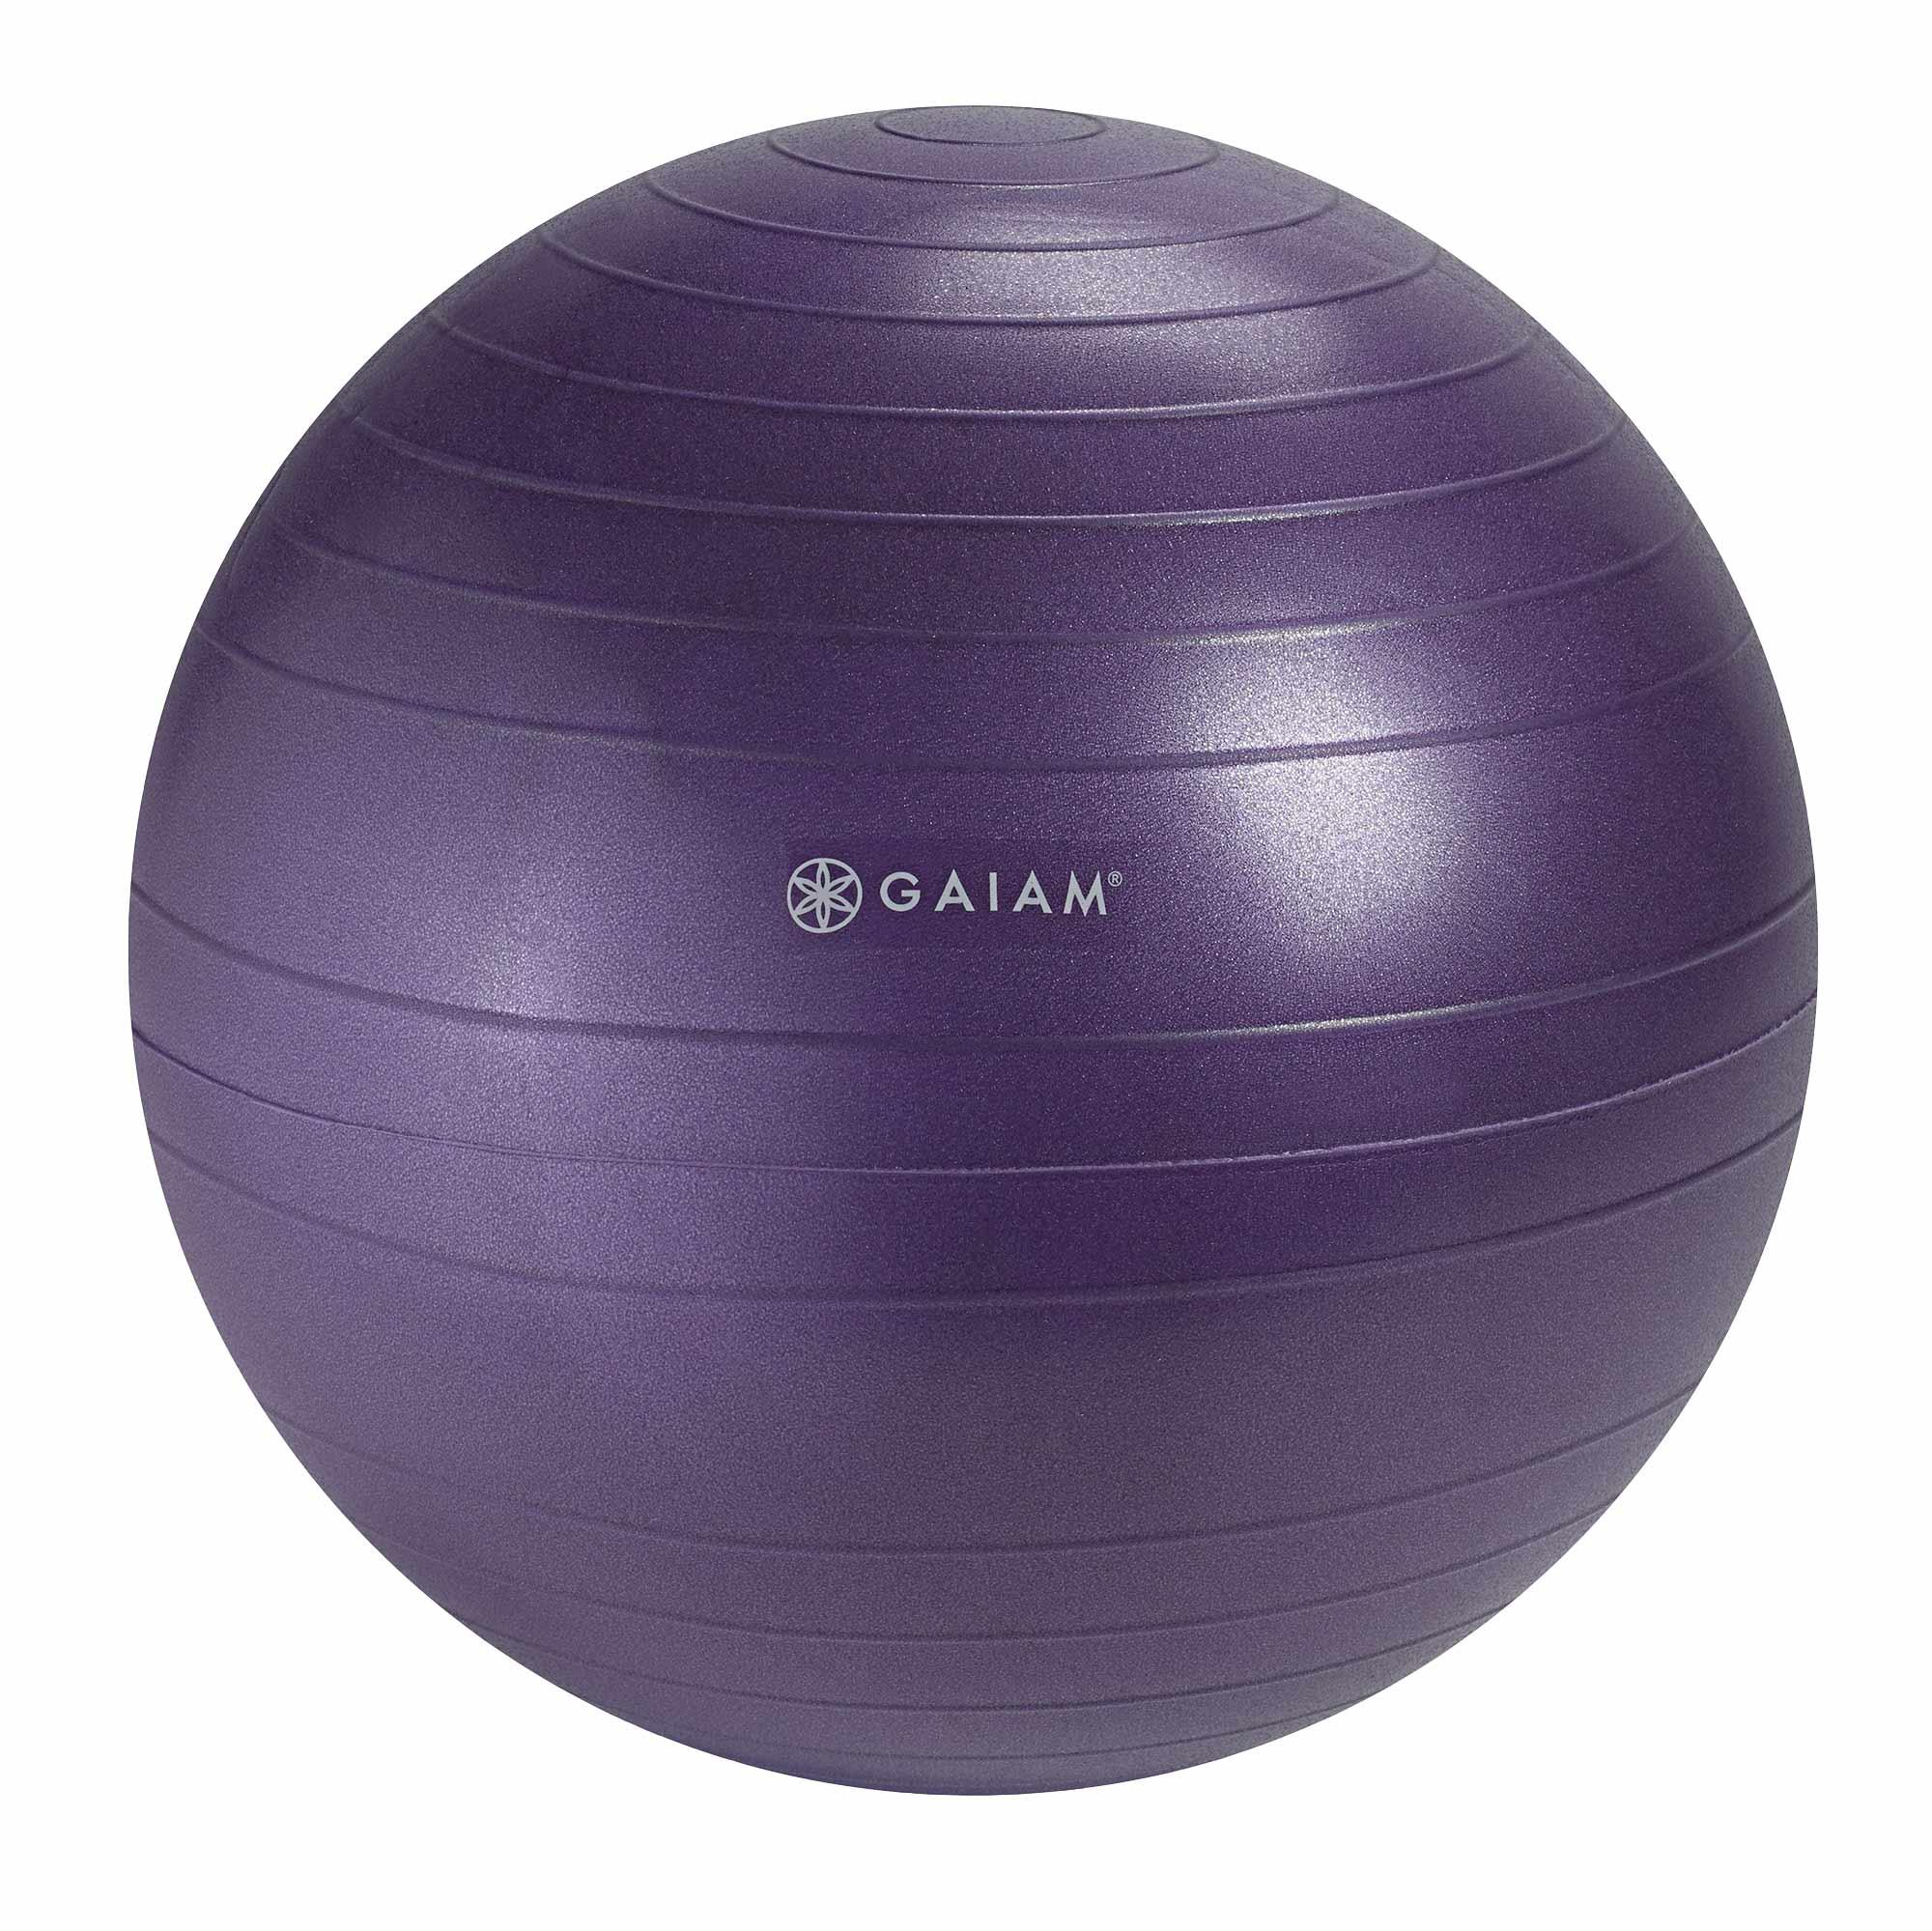 Amazon.com: Gaiam Classic Balance Ball Chair Ball